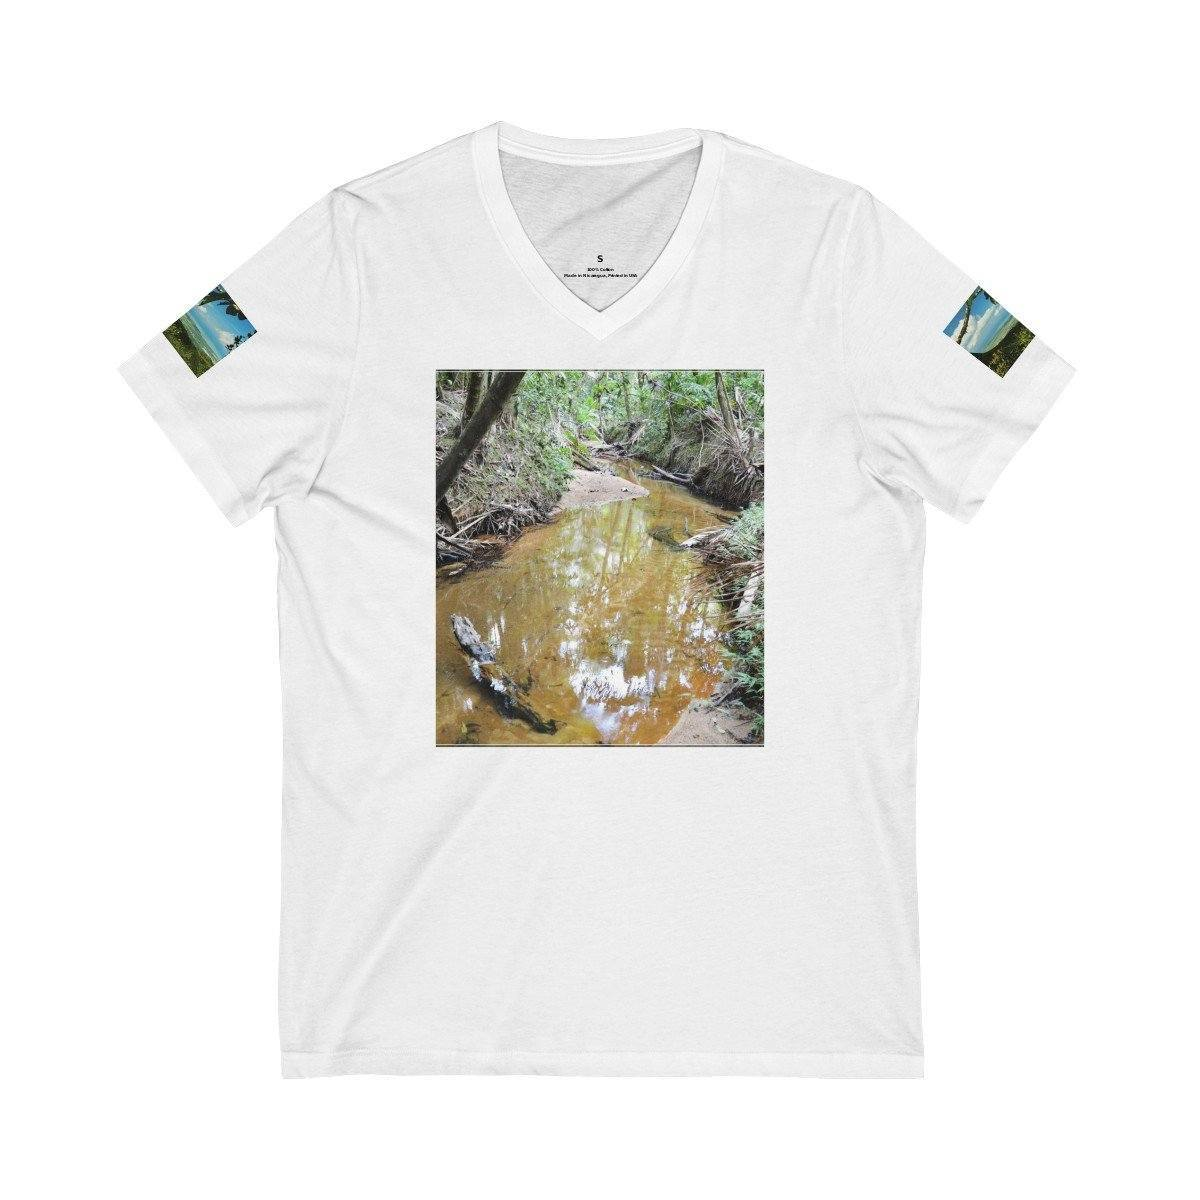 Bella+Canvas - Unisex Jersey Short Sleeve V-Neck Tee - Printed in Germany by Textildruck Europa - El Yunque Rainforest - Puerto Rico V-neck Printify